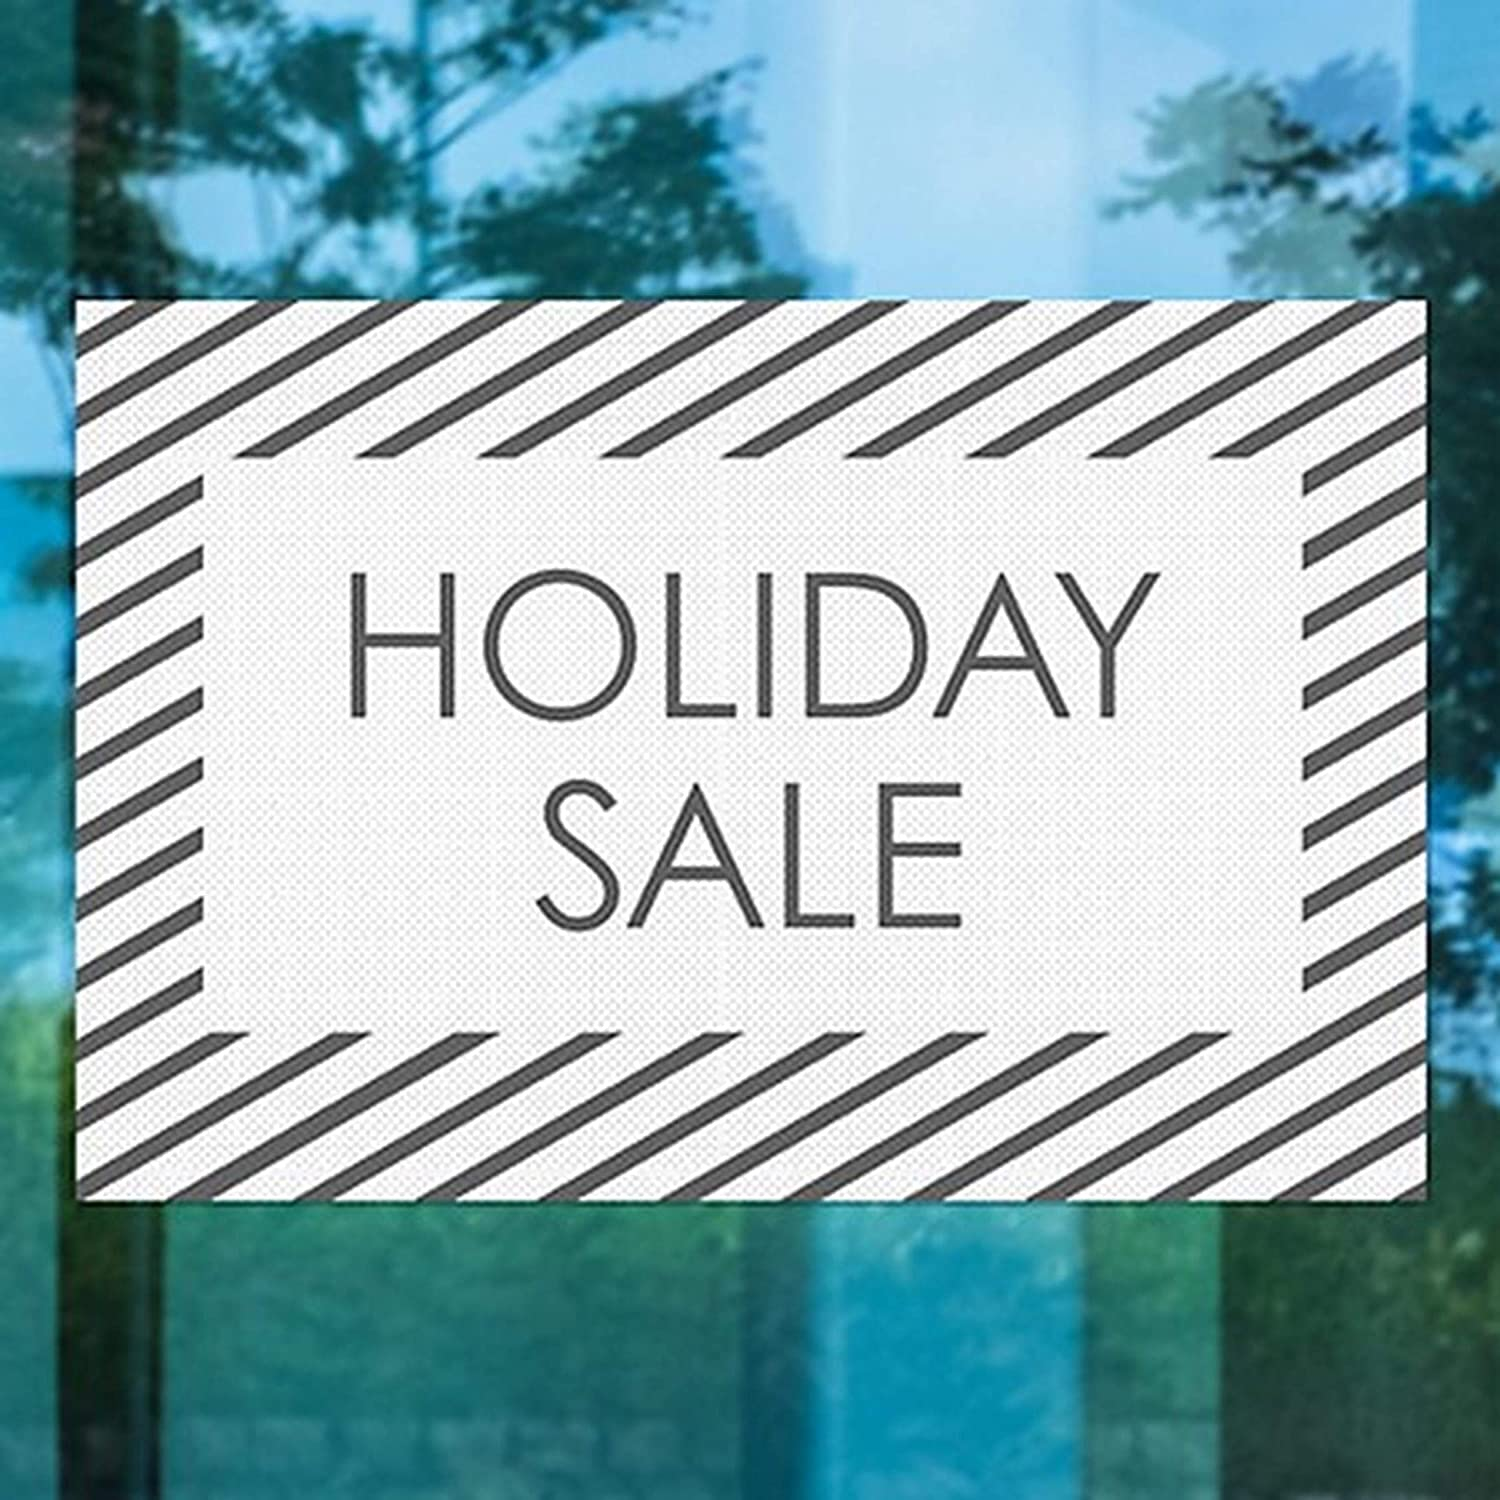 30 x 20 Pack of 5 Stripes White Perforated Window Decal CGSignLab 2455127/_5gfxp/_30x20/_None Holiday Sale Perforation